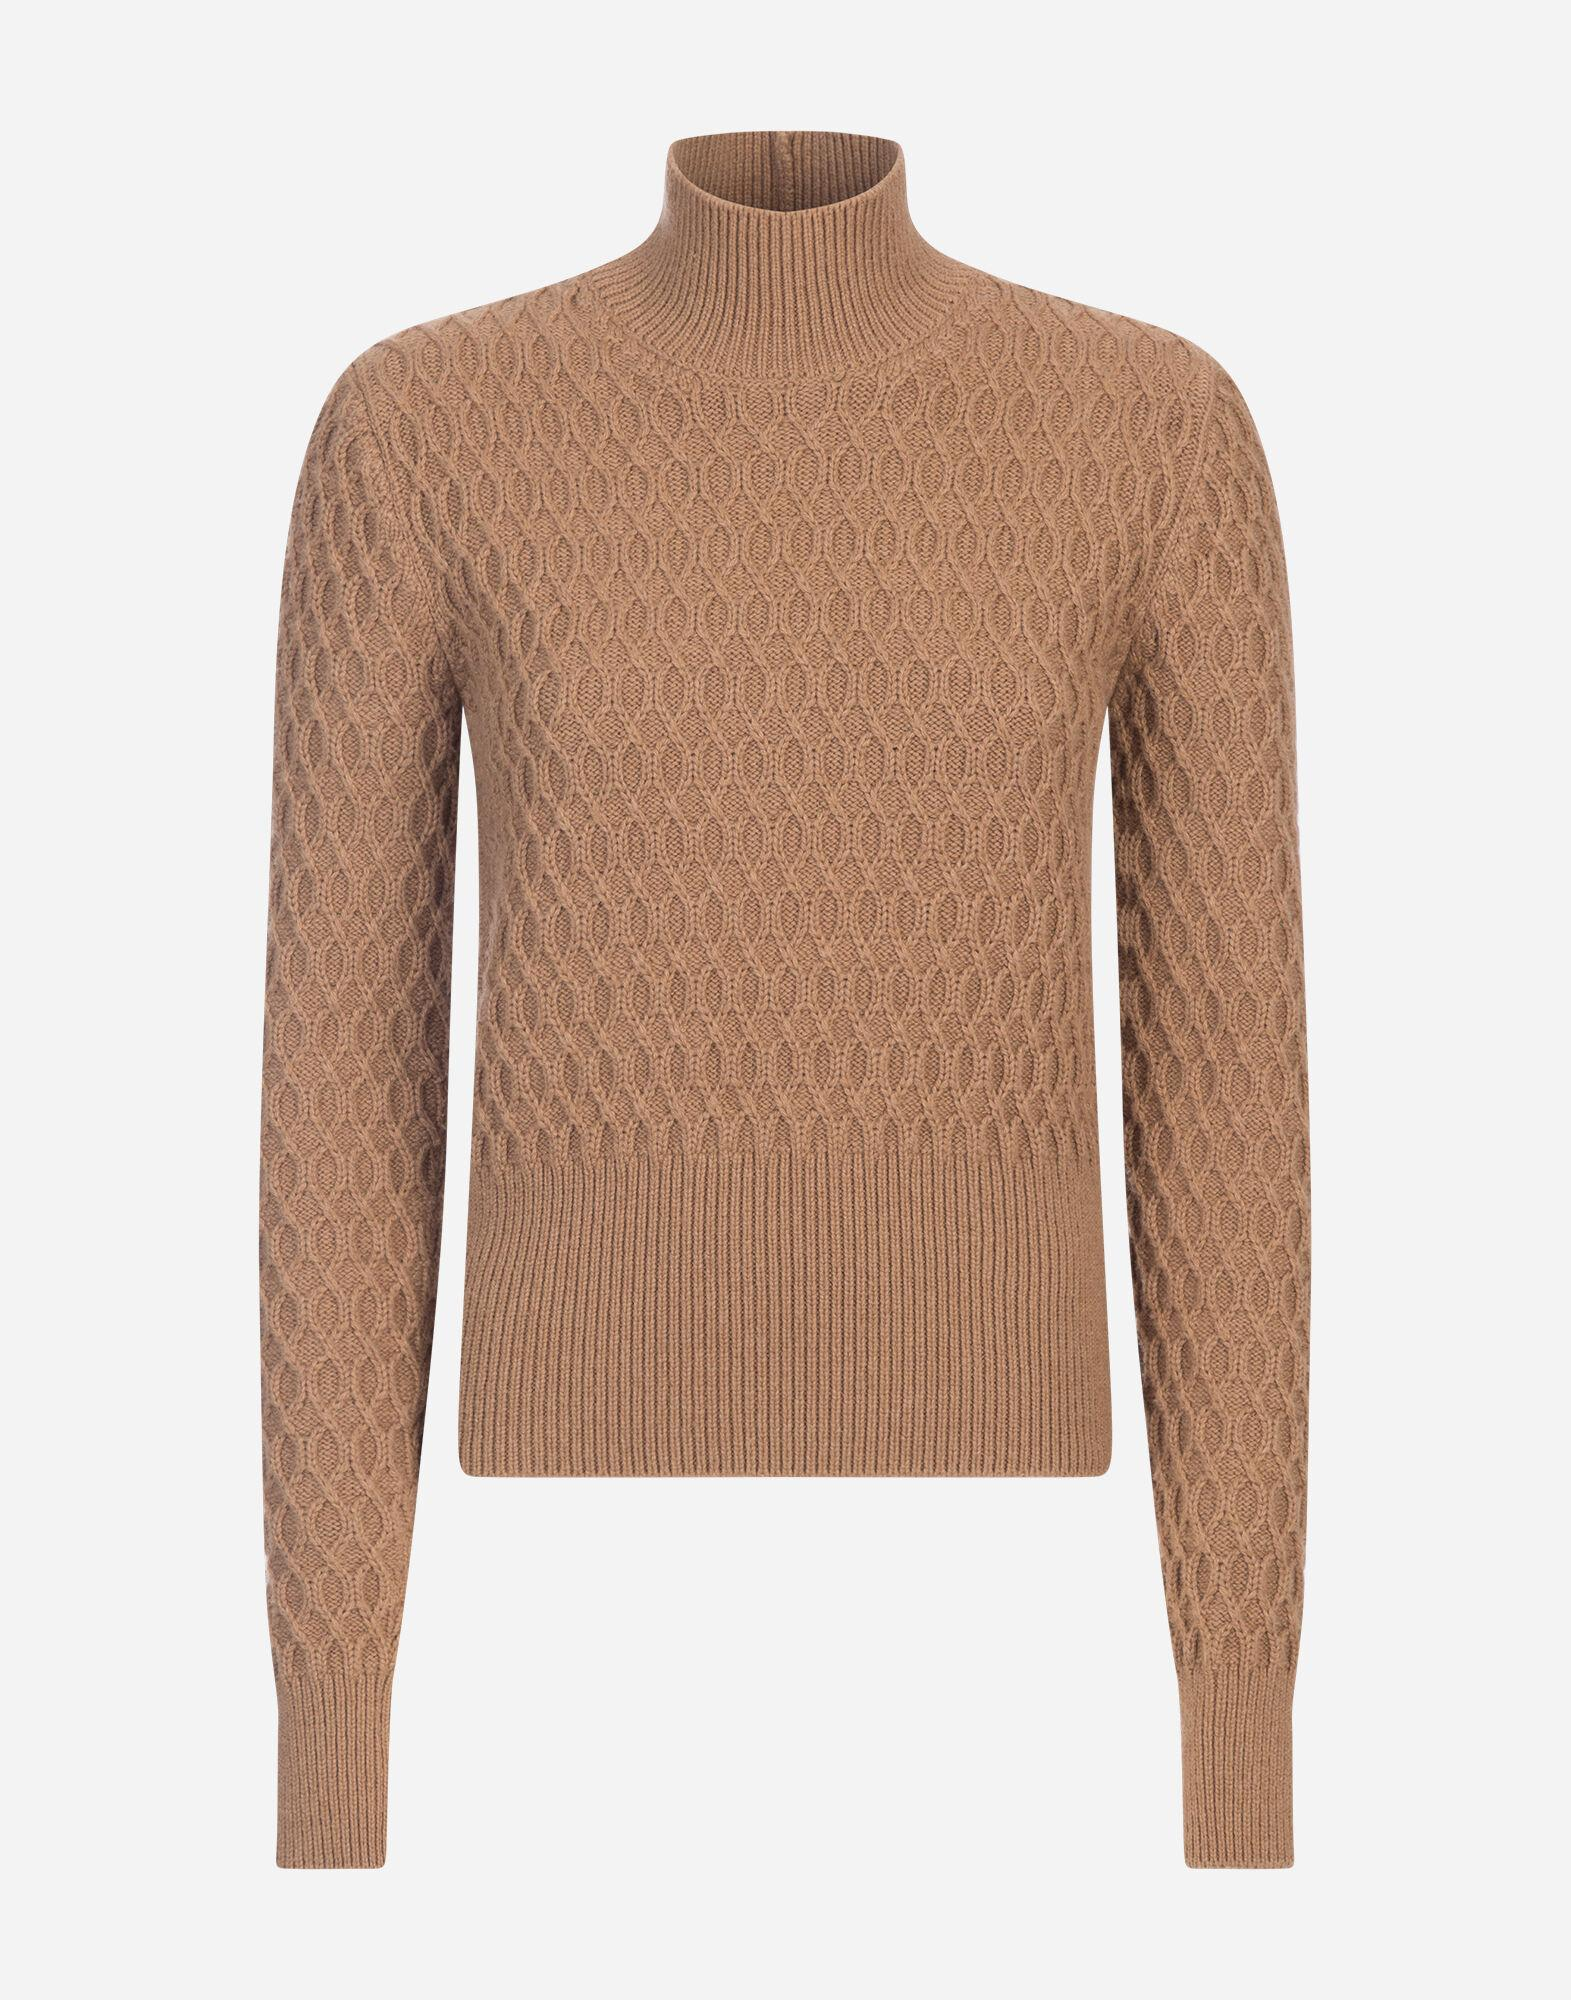 High-neck sweater in camel with rhombus stitch 4